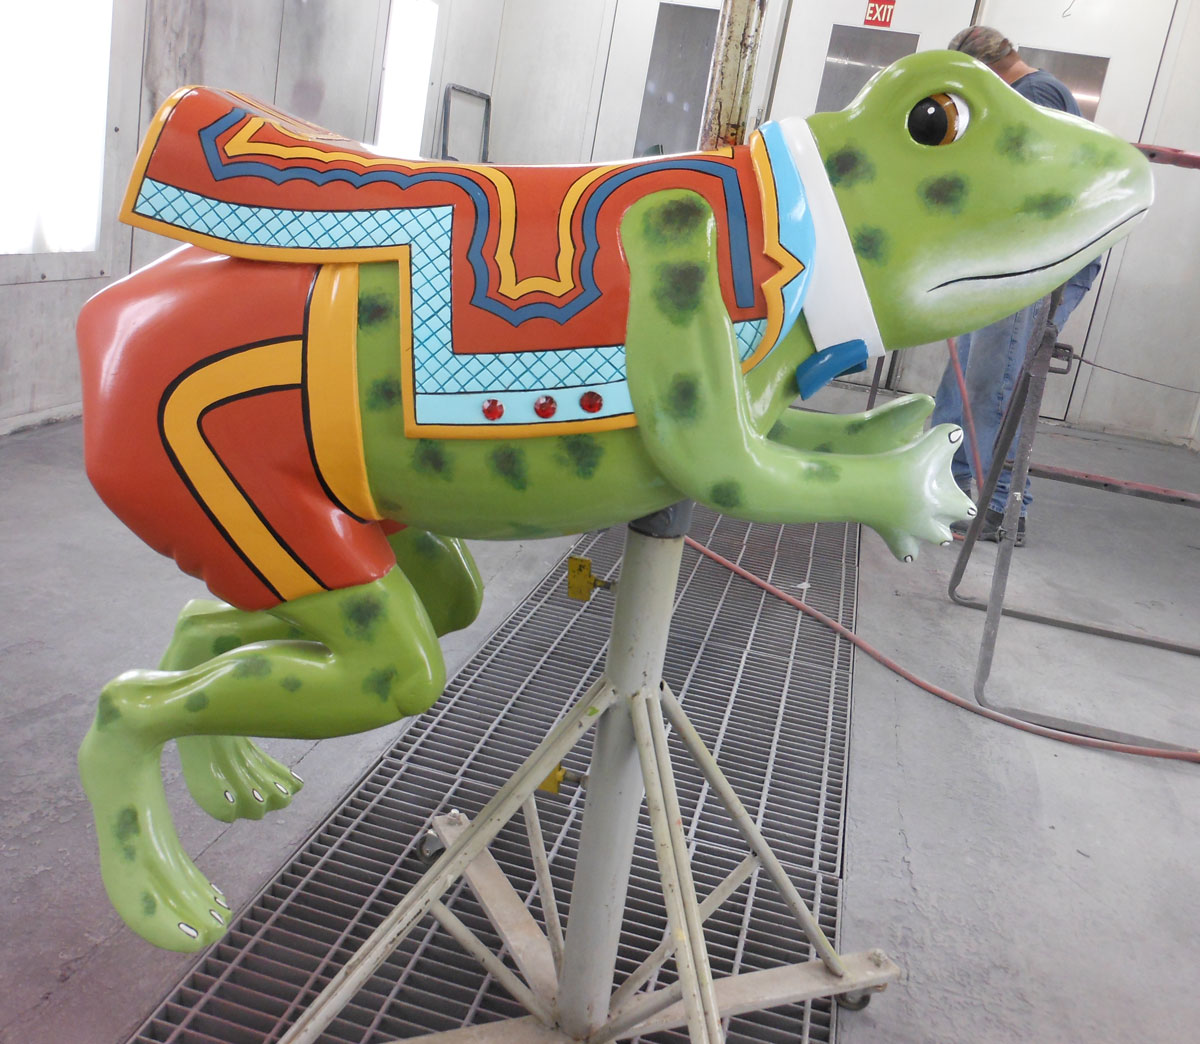 Restored carousel Hop Toad from The Henry Ford Museum, Greenfield Village, Dearborn, MI